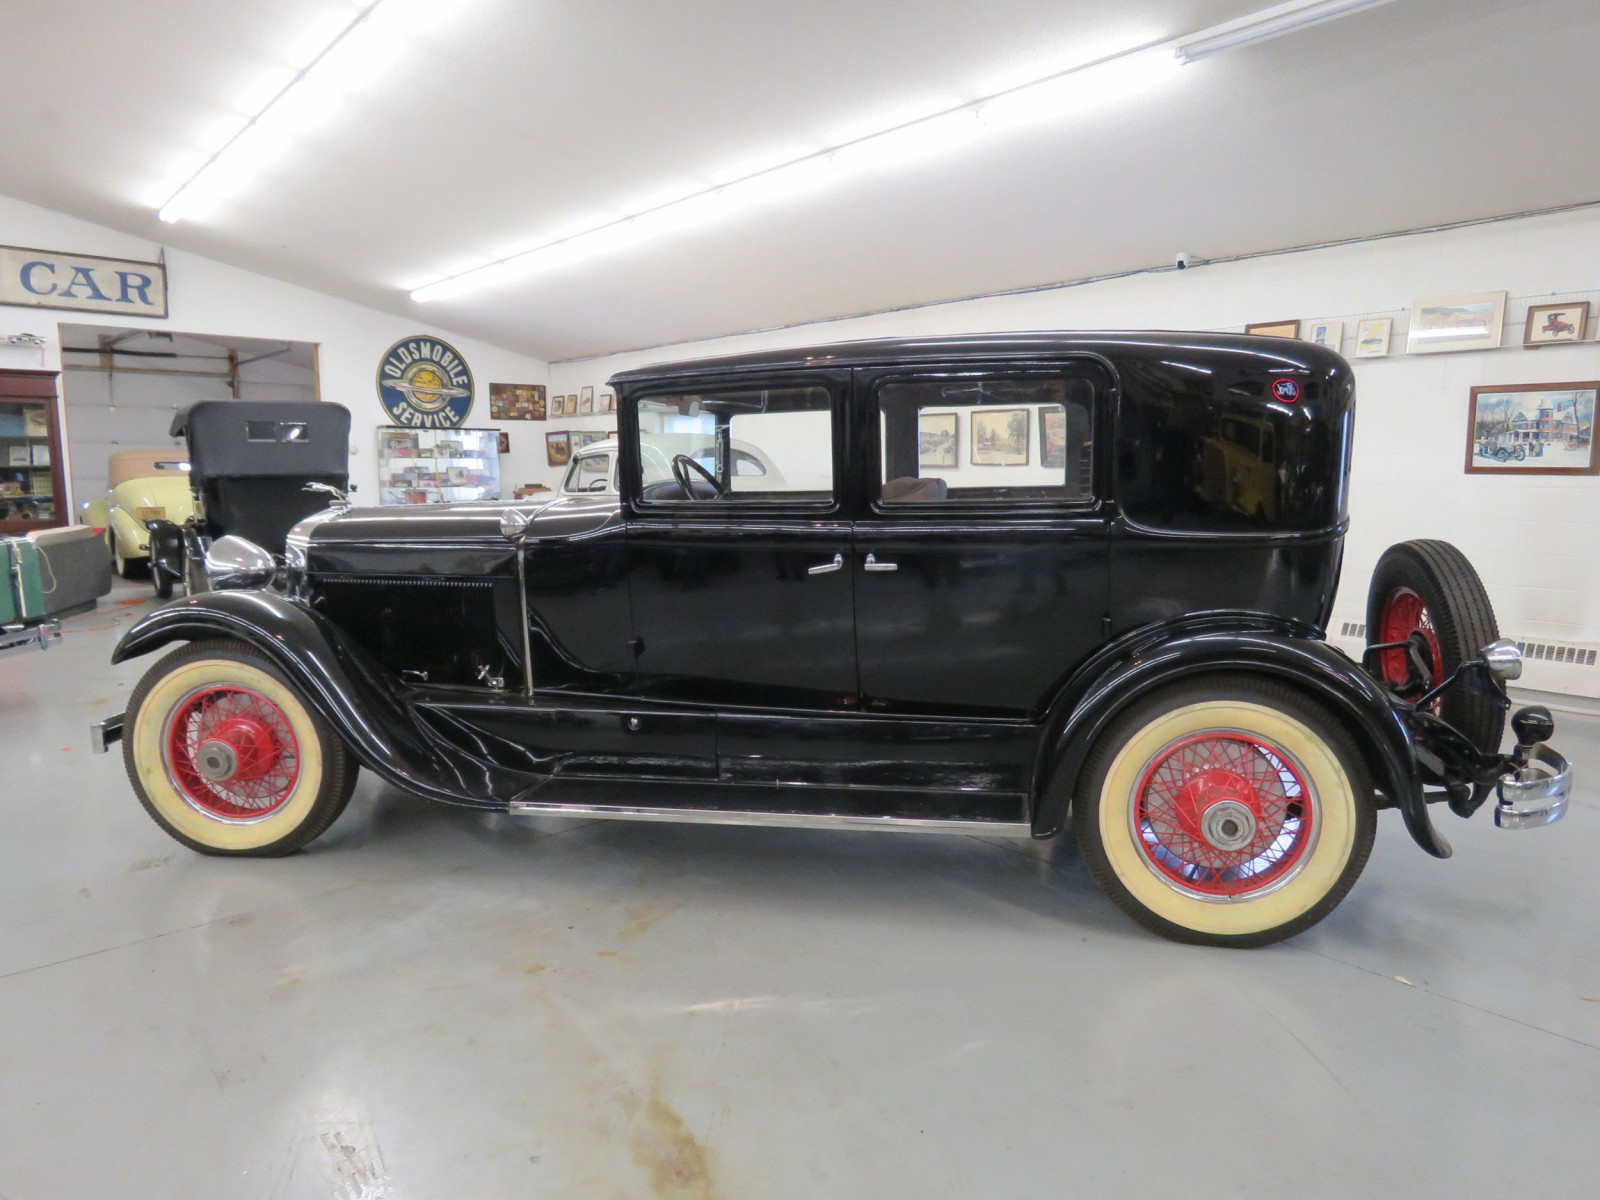 1929 Lincoln Model L 4dr Sedan - Image 11